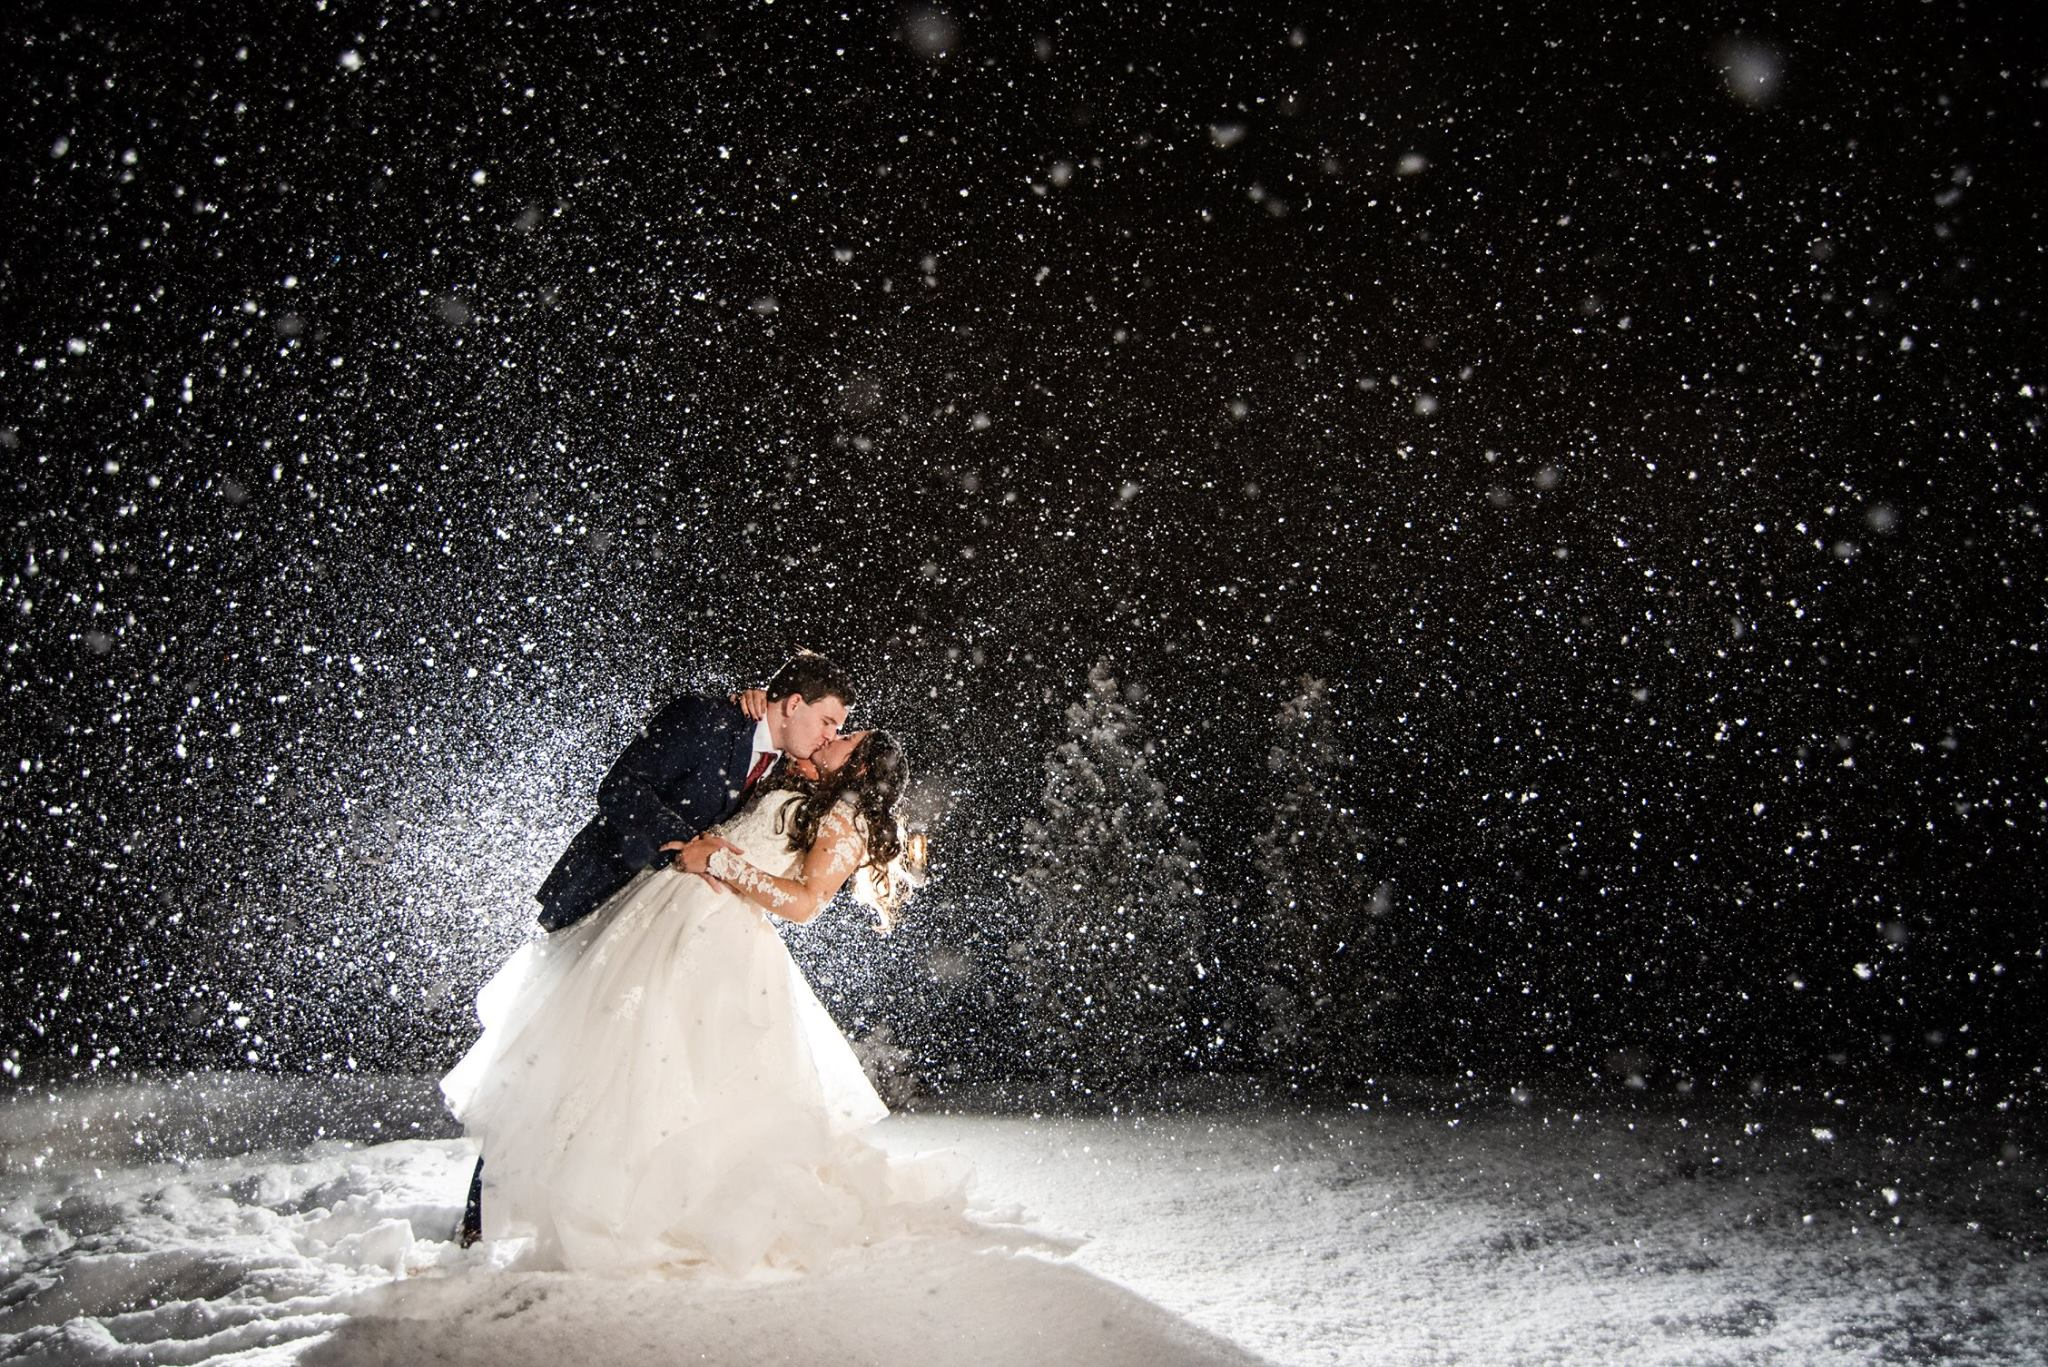 snow on elopement day